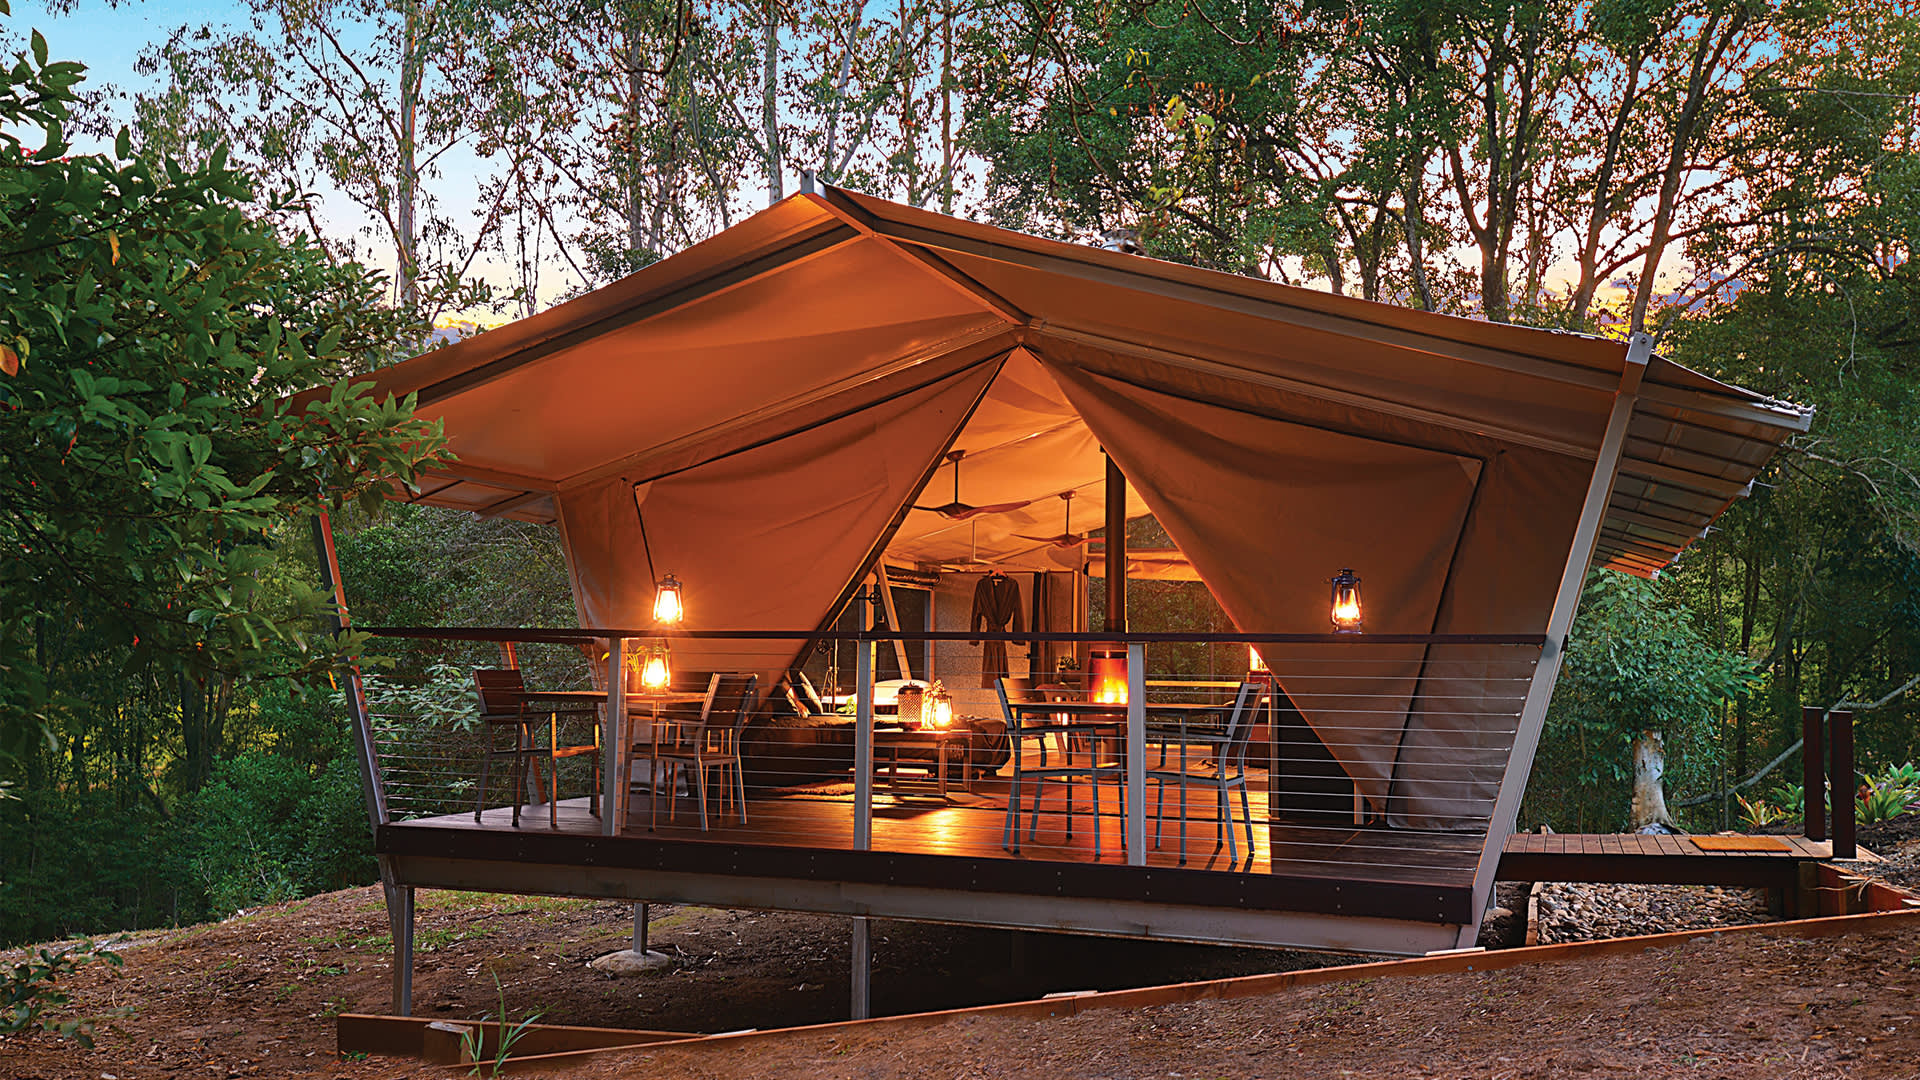 The best camping & glamping on the Sunshine Coast